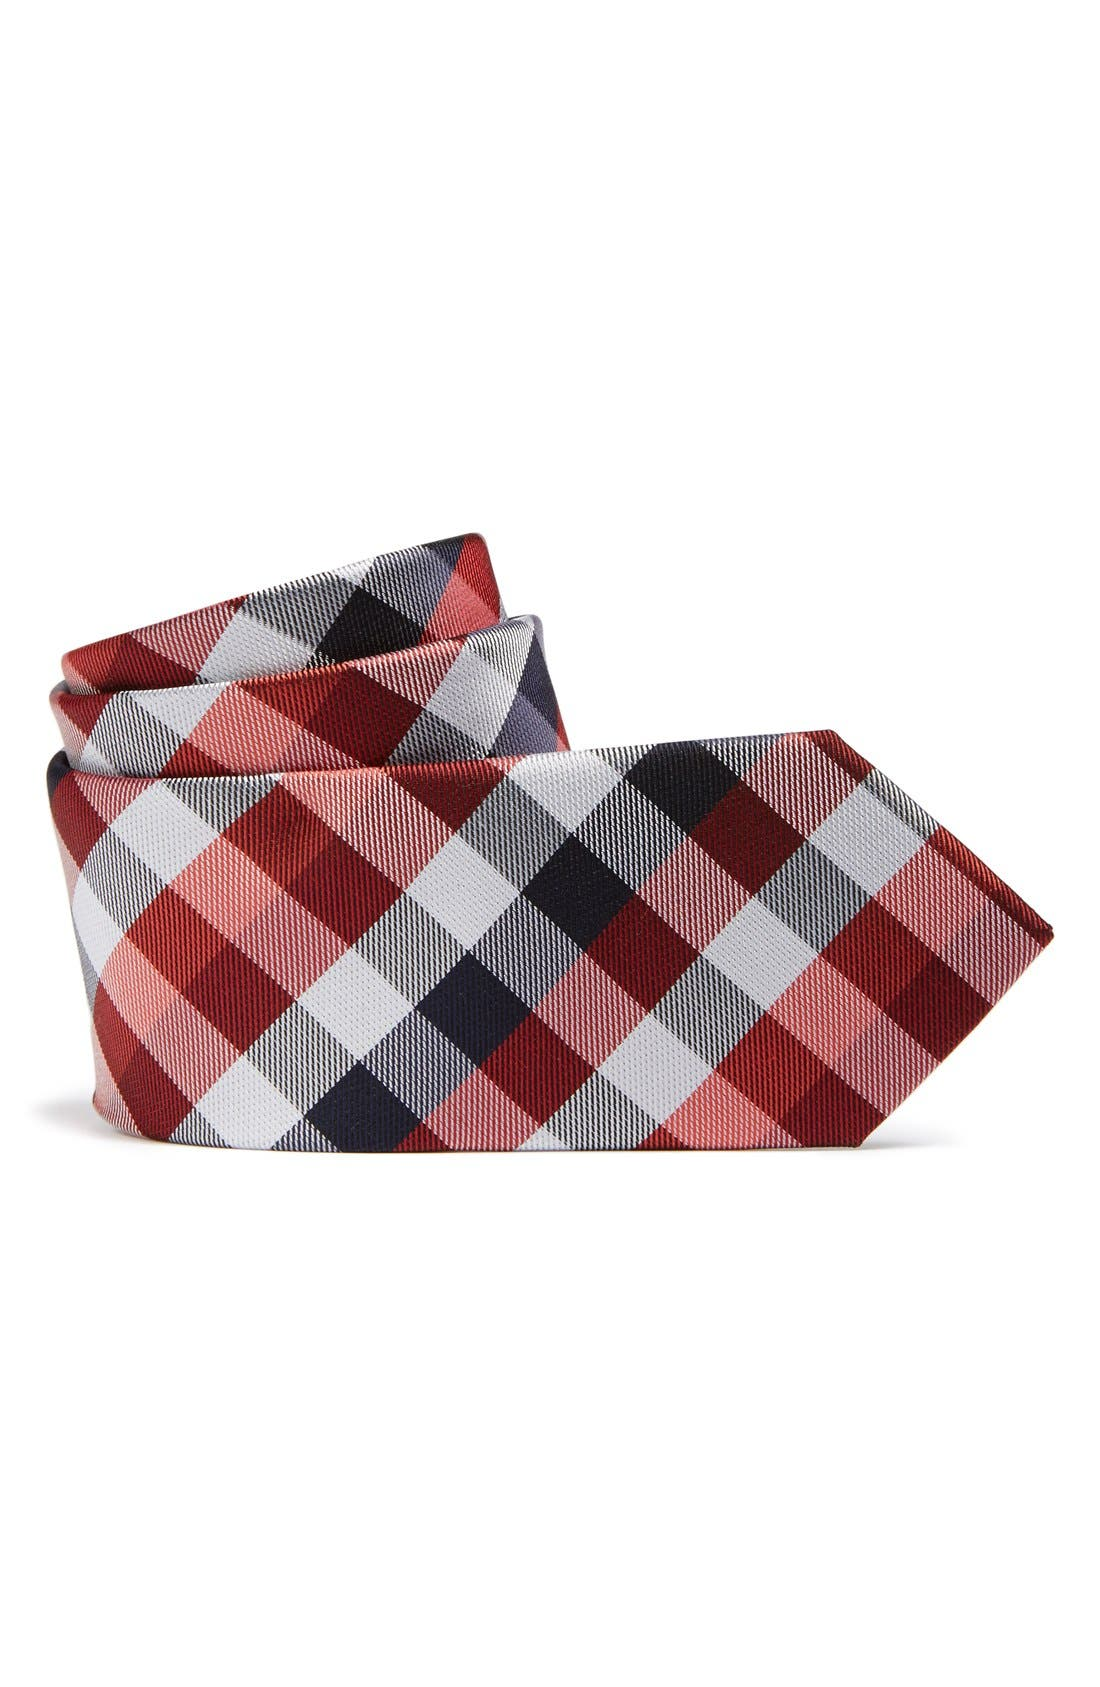 Alternate Image 1 Selected - Nordstrom Plaid Silk Tie (Big Boys)